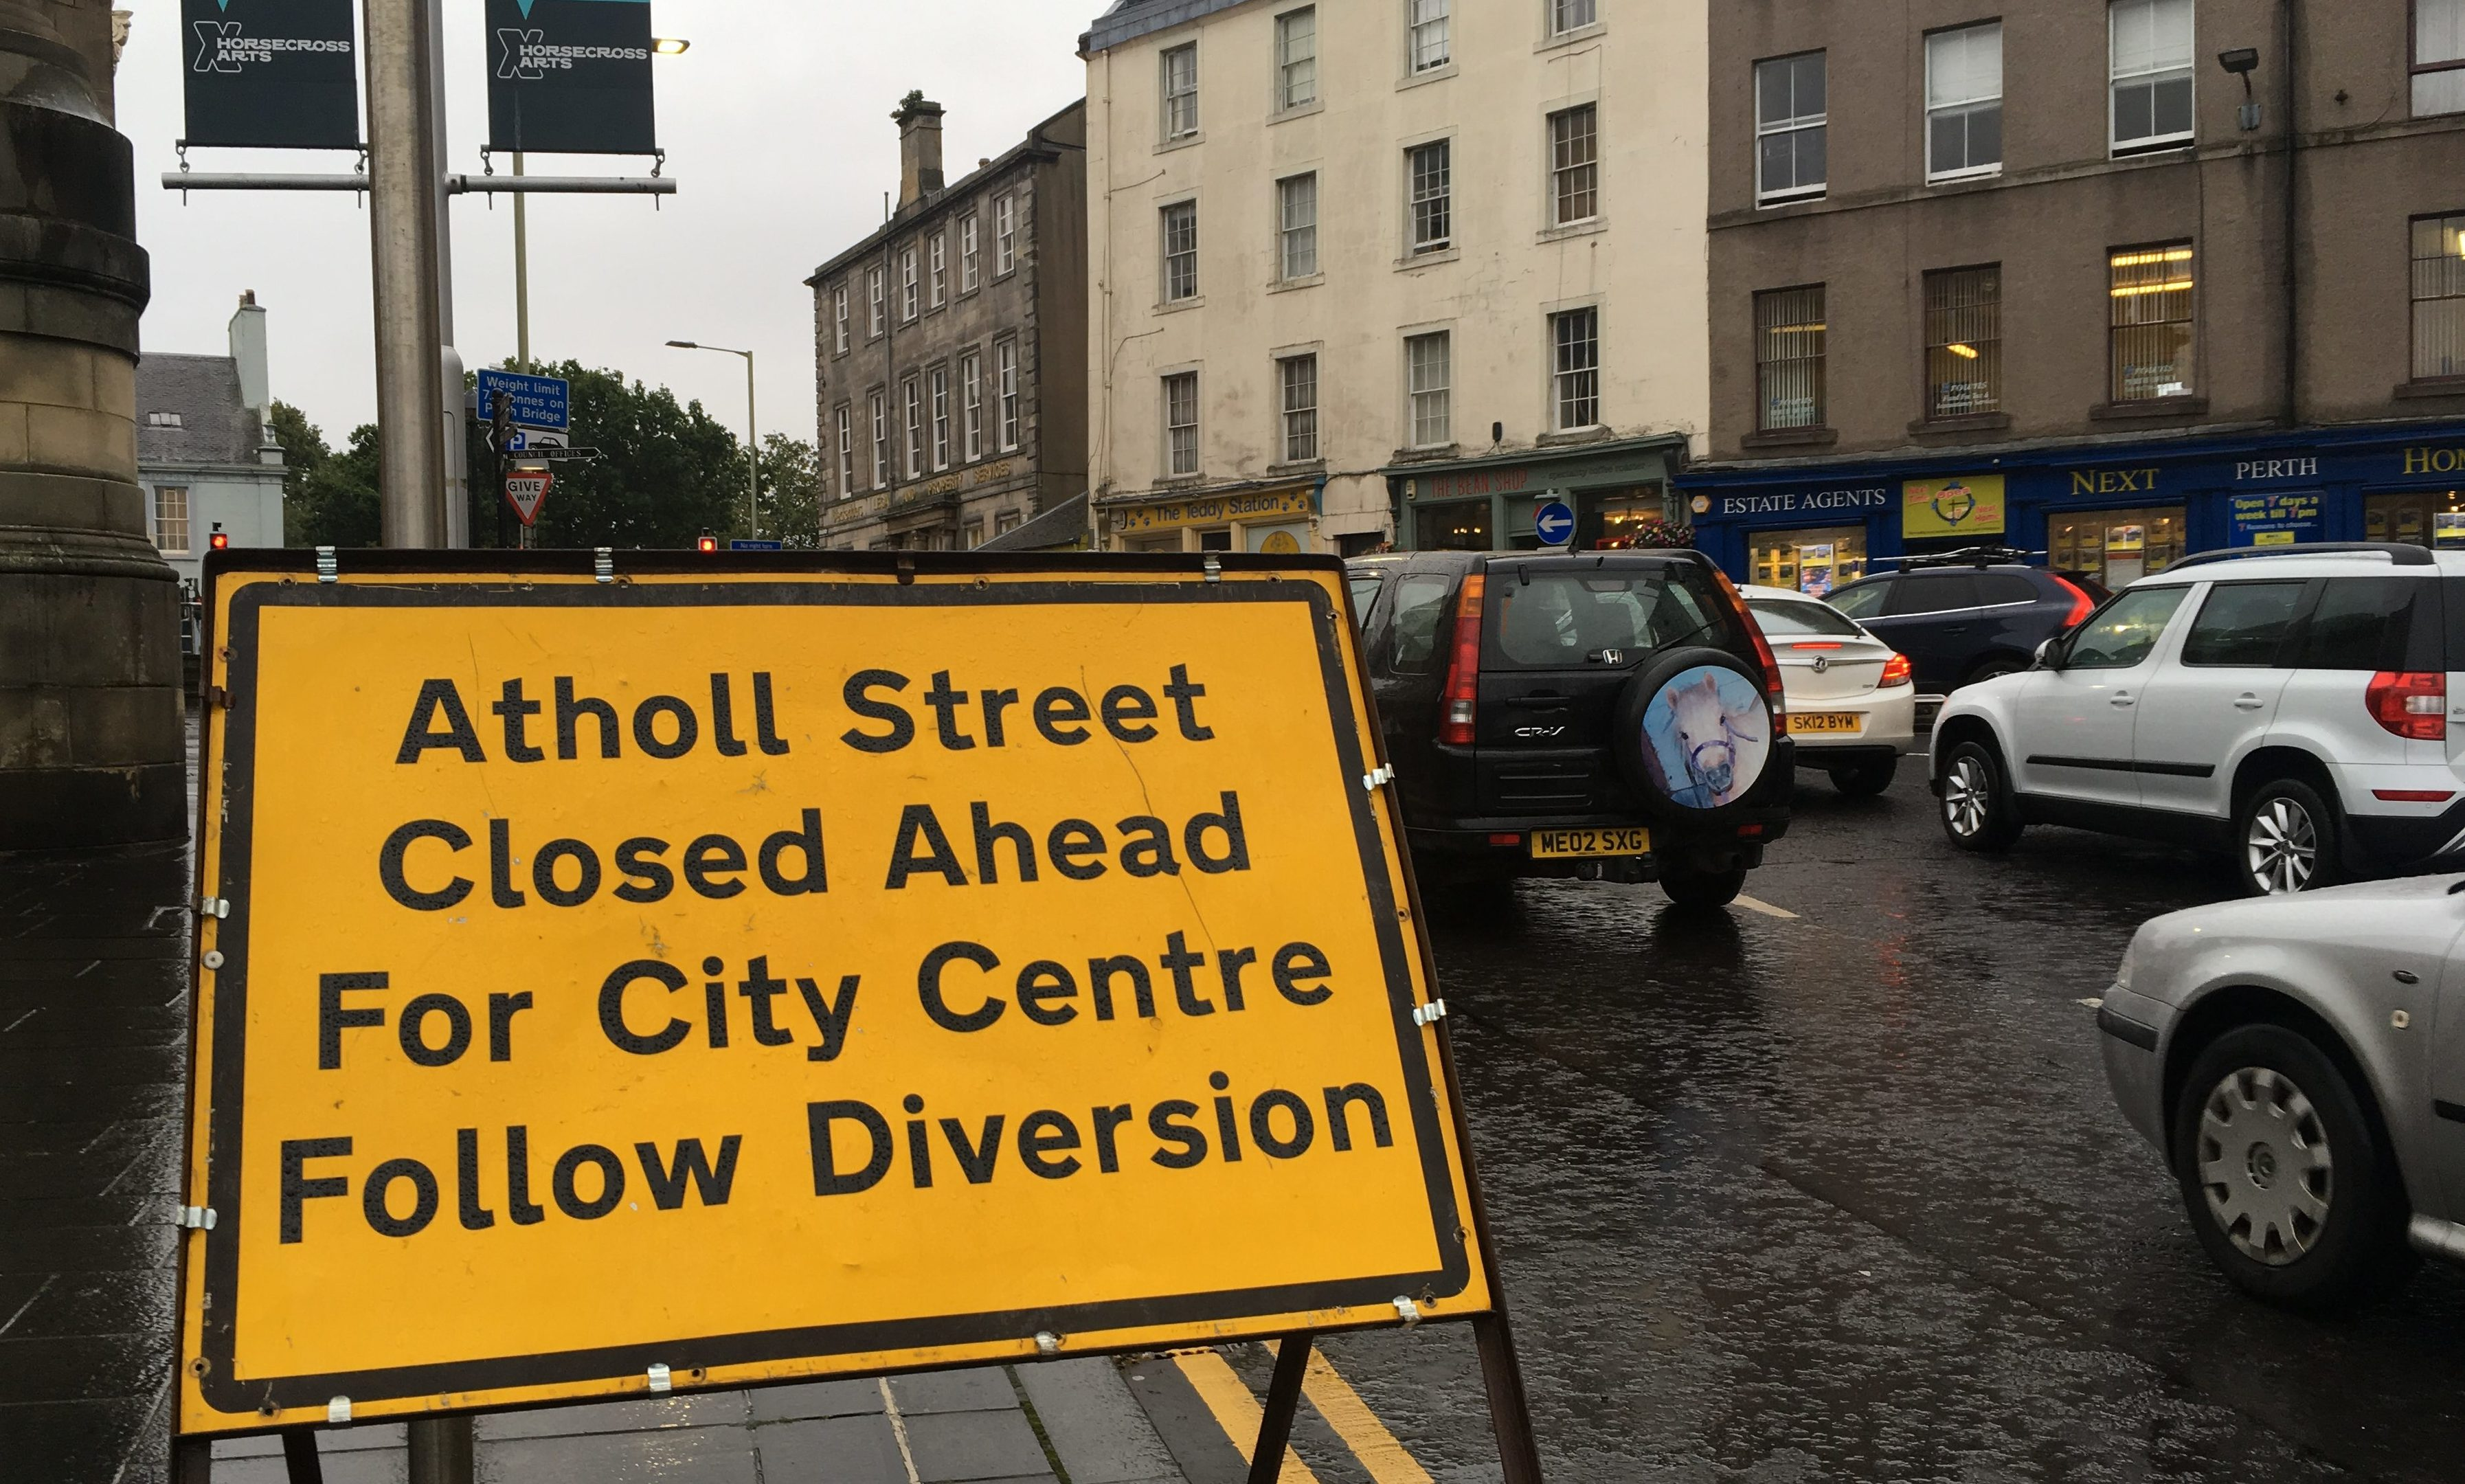 Traffic brought to a standstill by work on Atholl Street. The focus now shifts to Kinnoull Street.